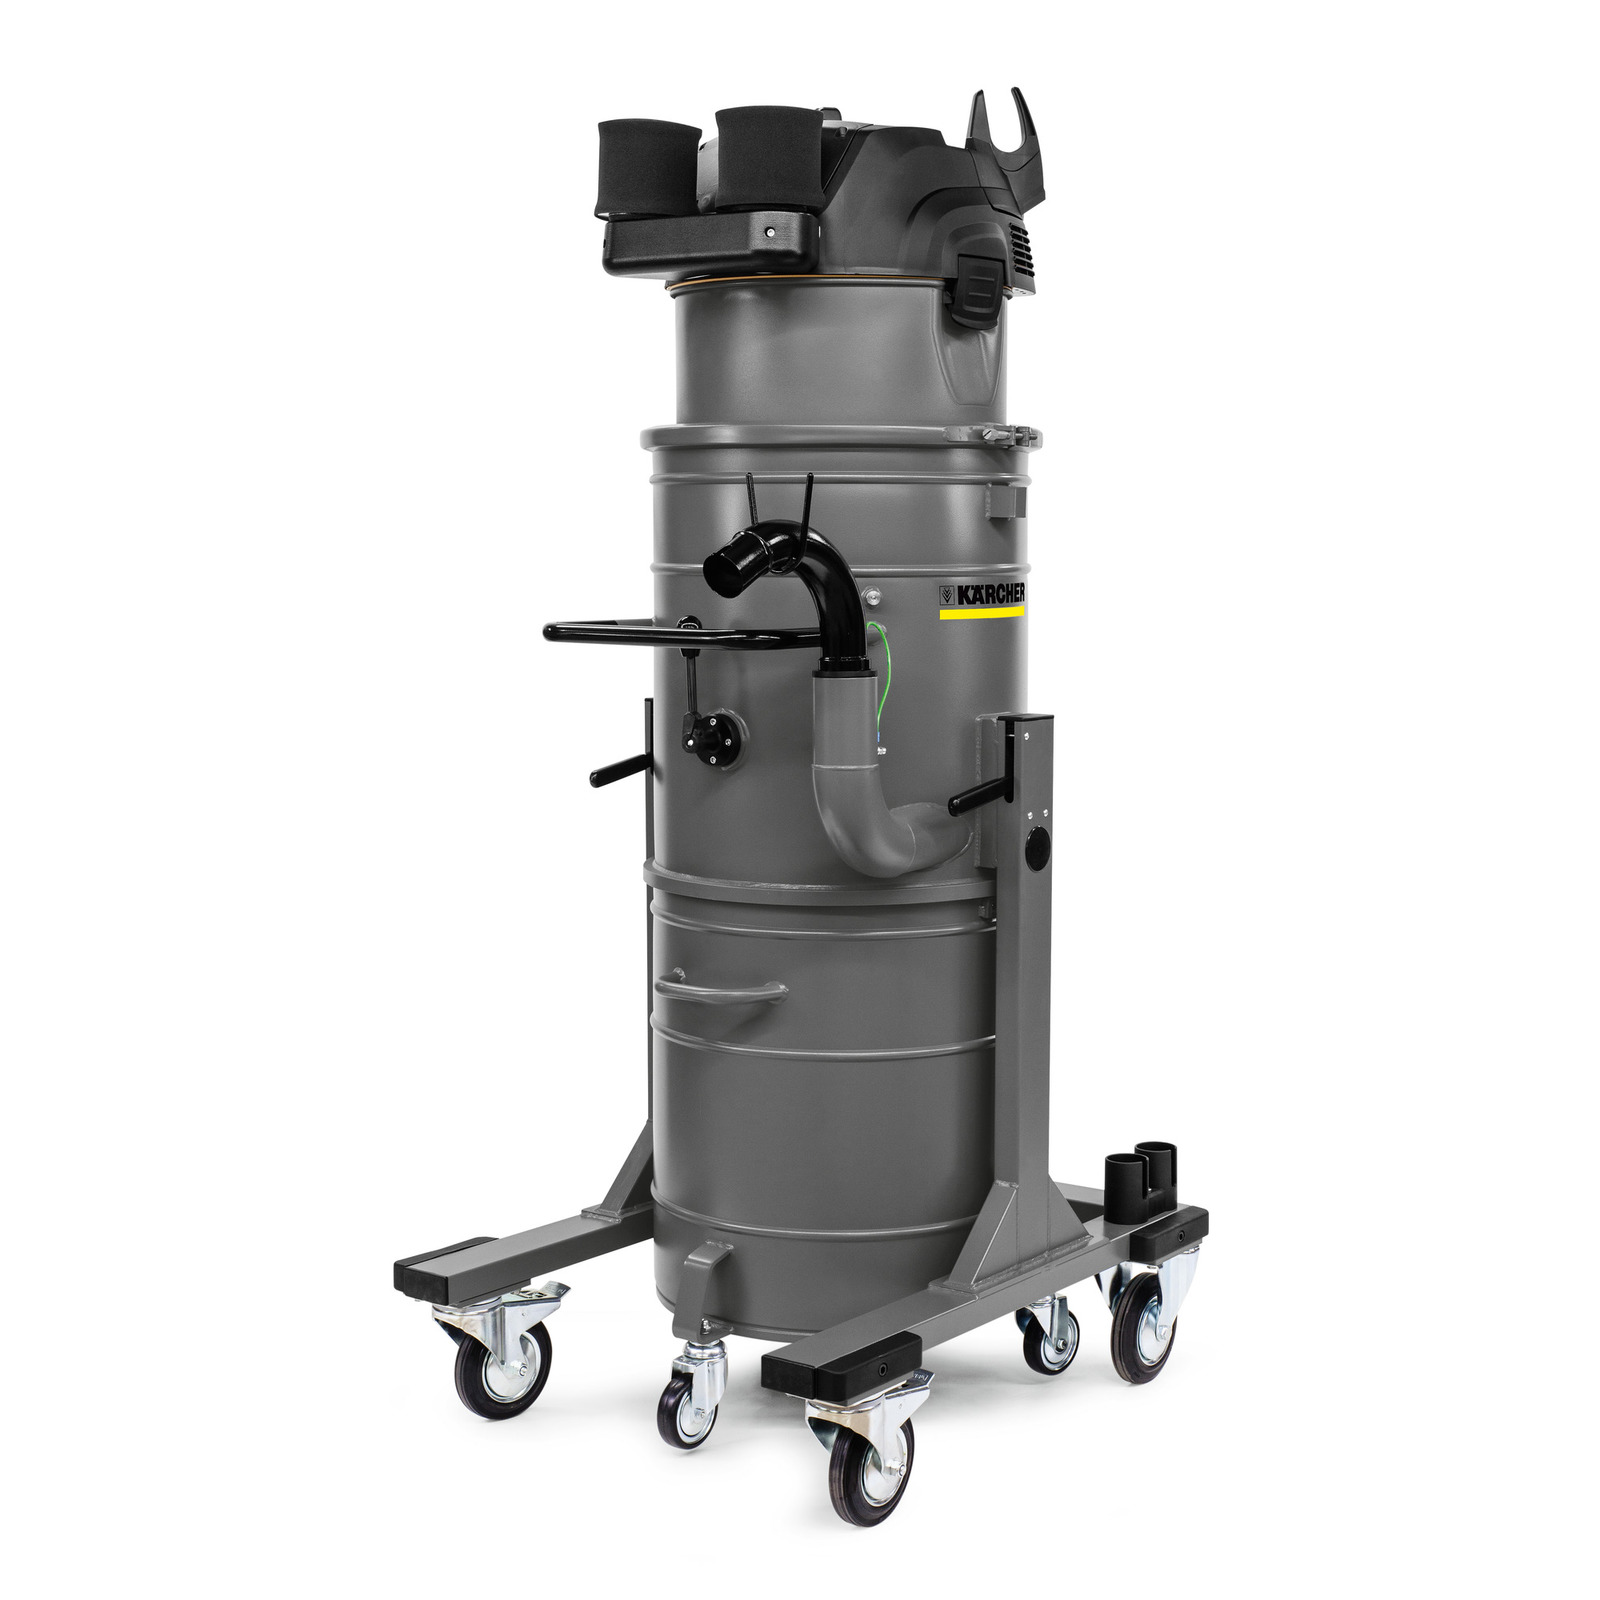 IVM 50/24-2 HEPA Industrial Vacuum Cleaner